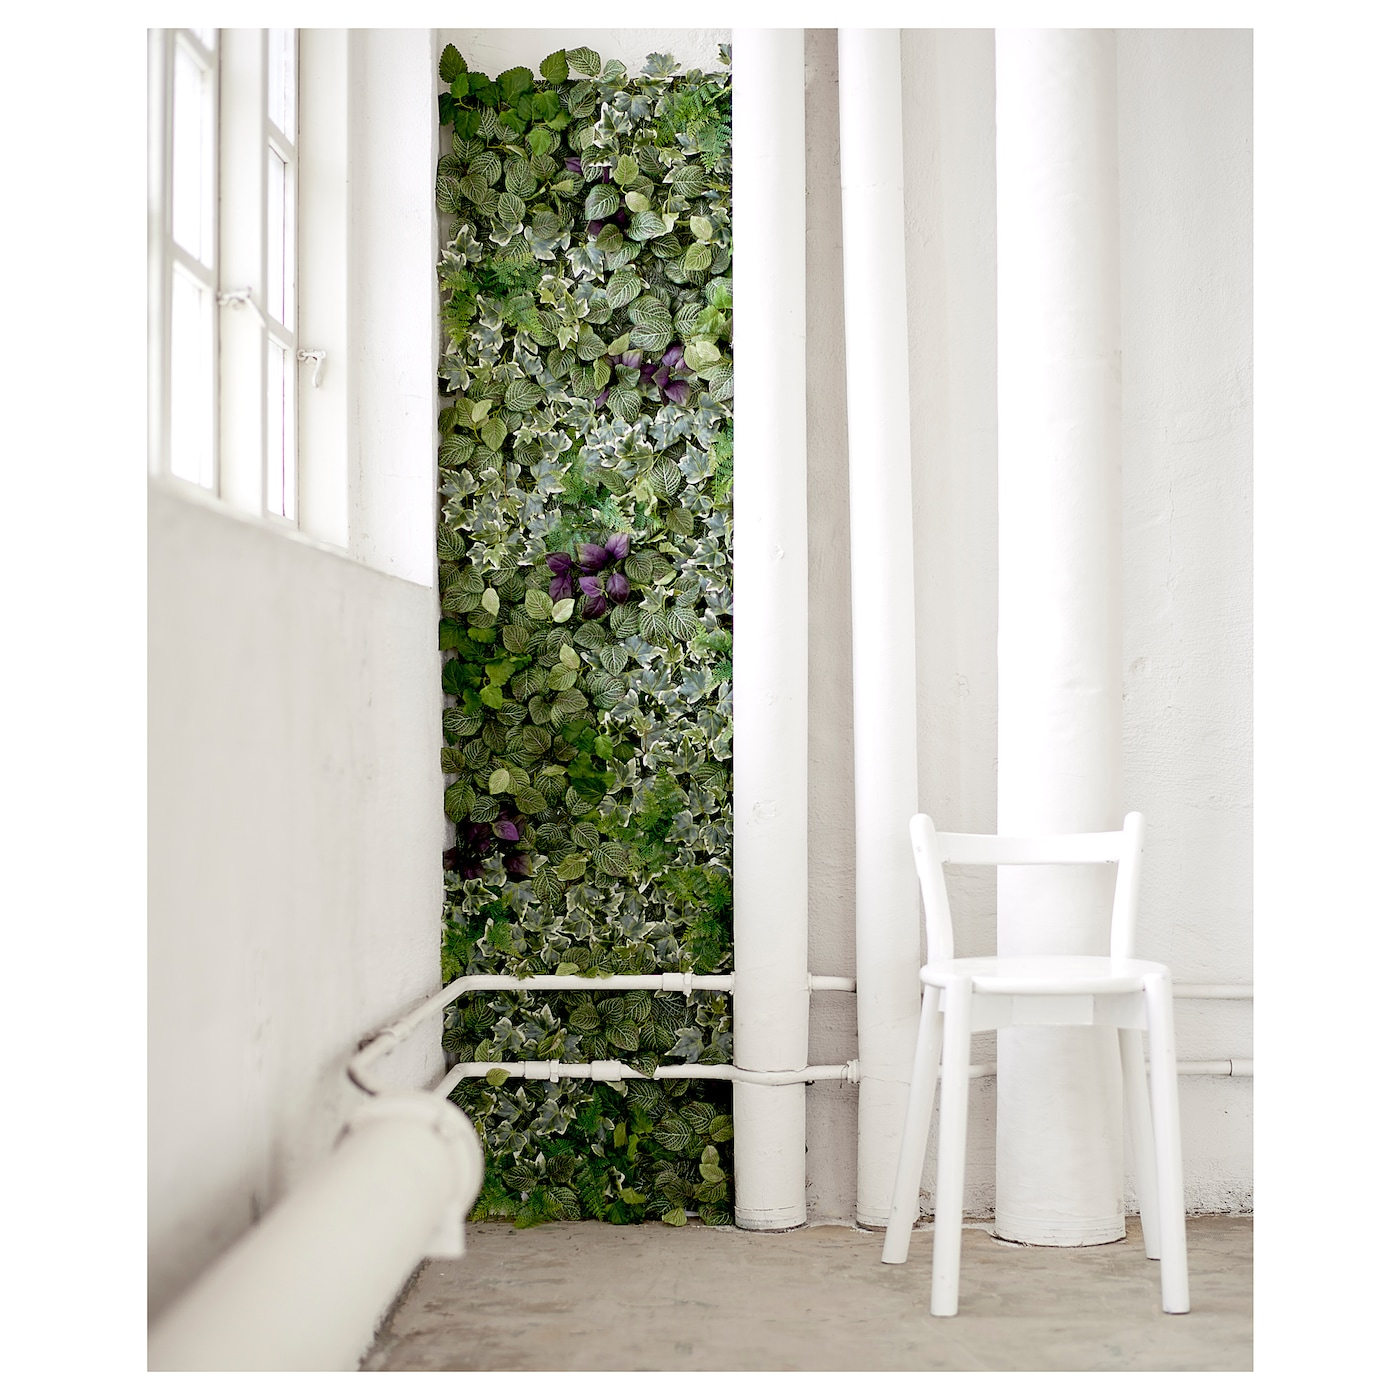 IKEA FEJKA artificial plant The plant wall panels are easy to connect with a simple click-solution.